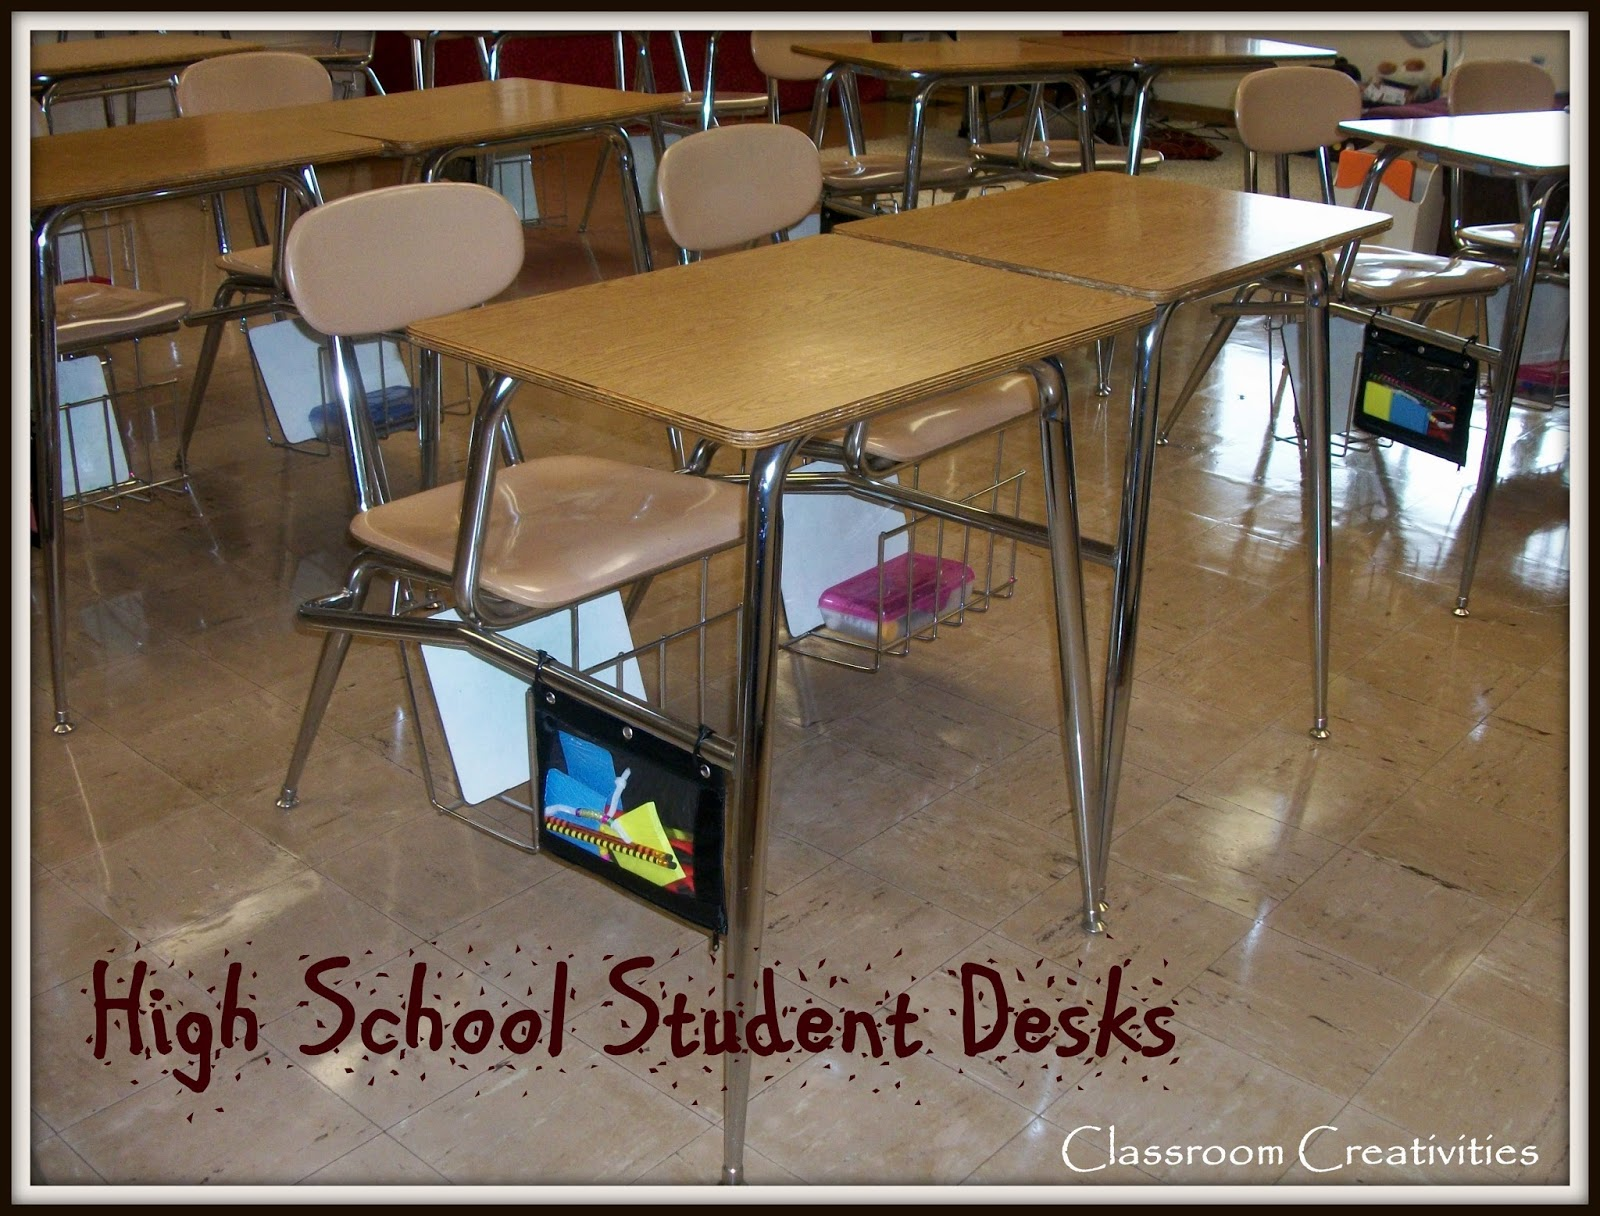 How to organize a middle school students desk?